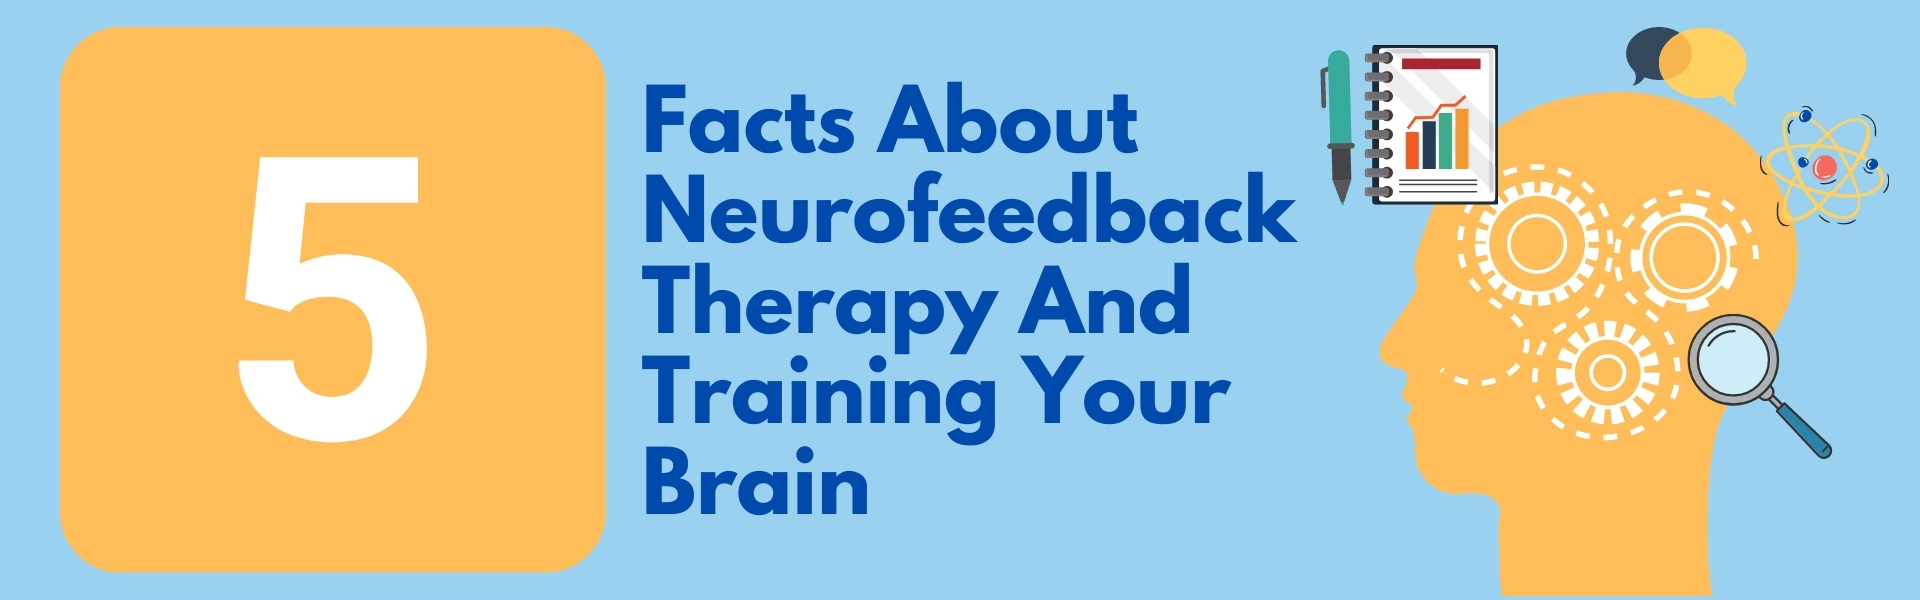 Facts About Neurofeedback Therapy and Training Your Brain